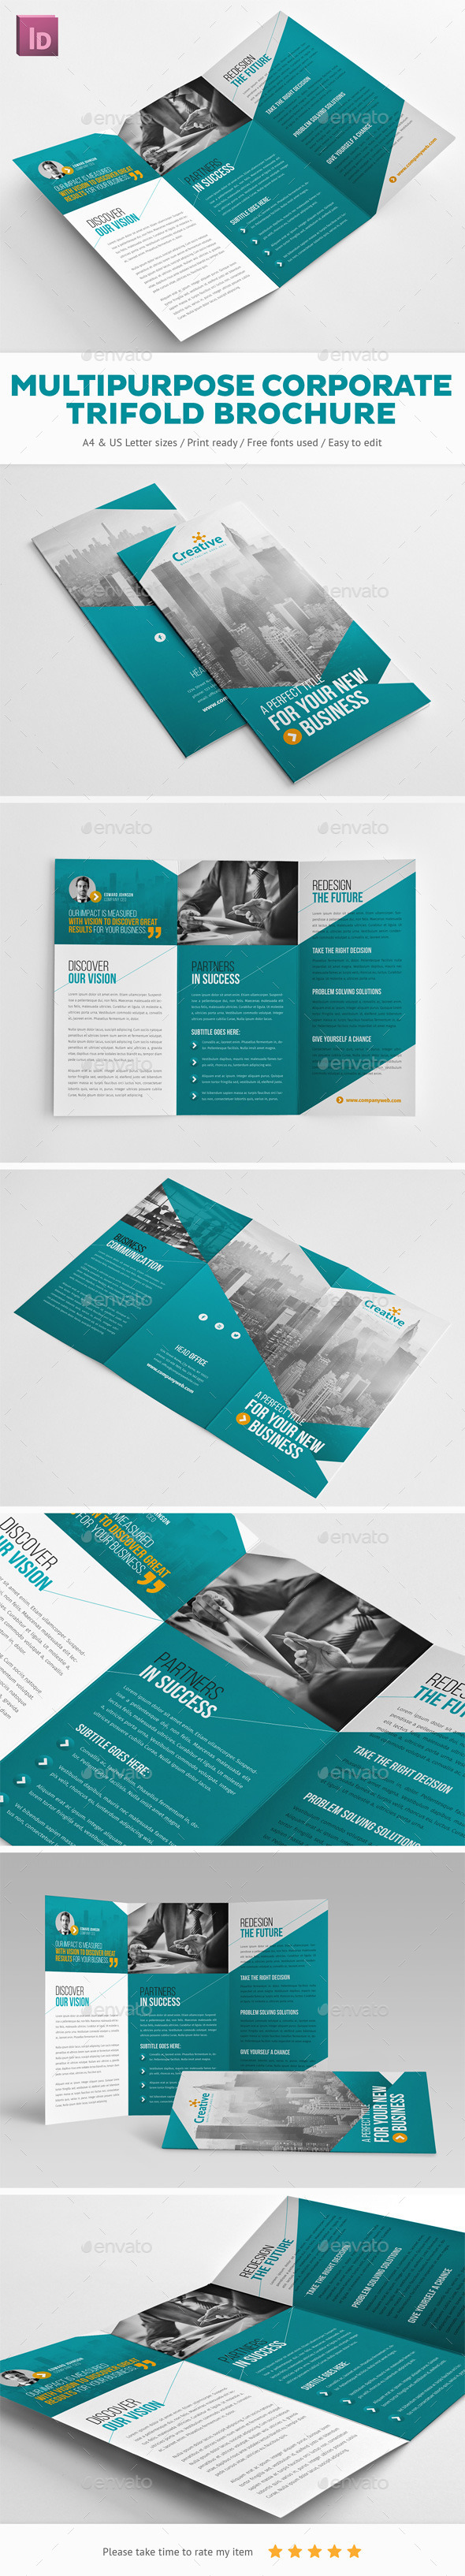 GraphicRiver Multipurpose Corporate Trifold Brochure 11928054